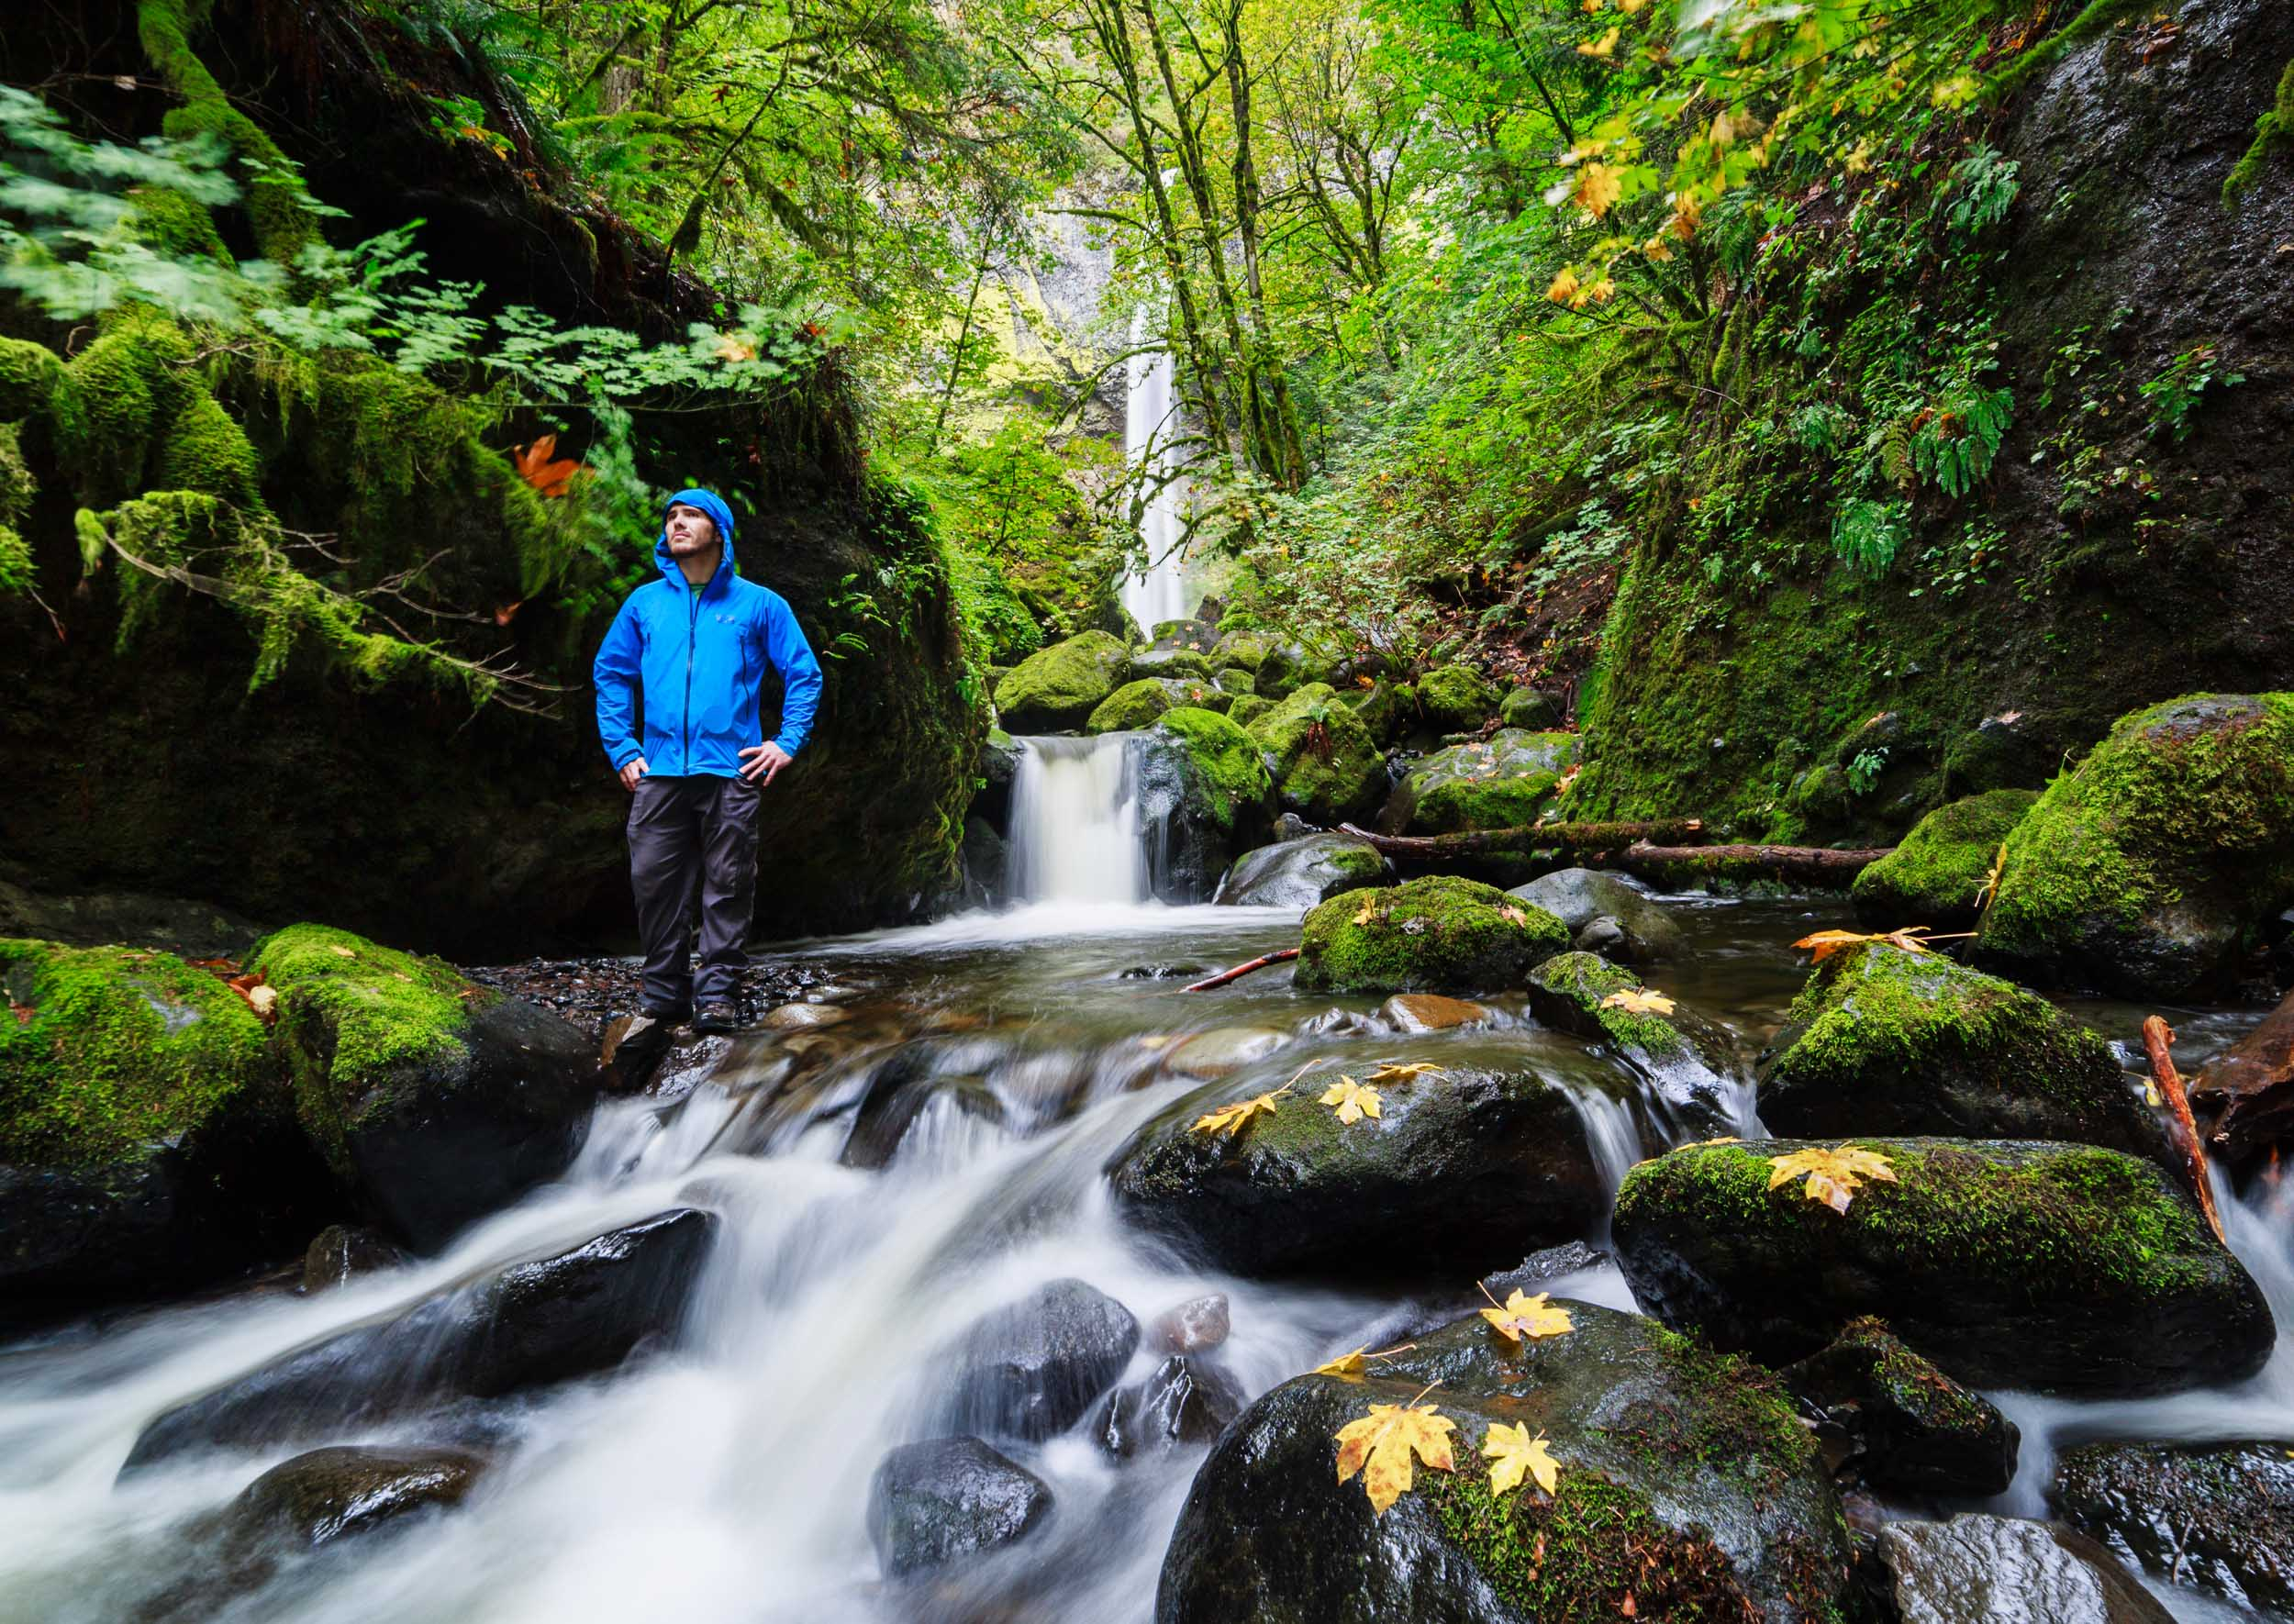 Hiker down stream in the mossy forest below the beautiful Elowah Falls, OR